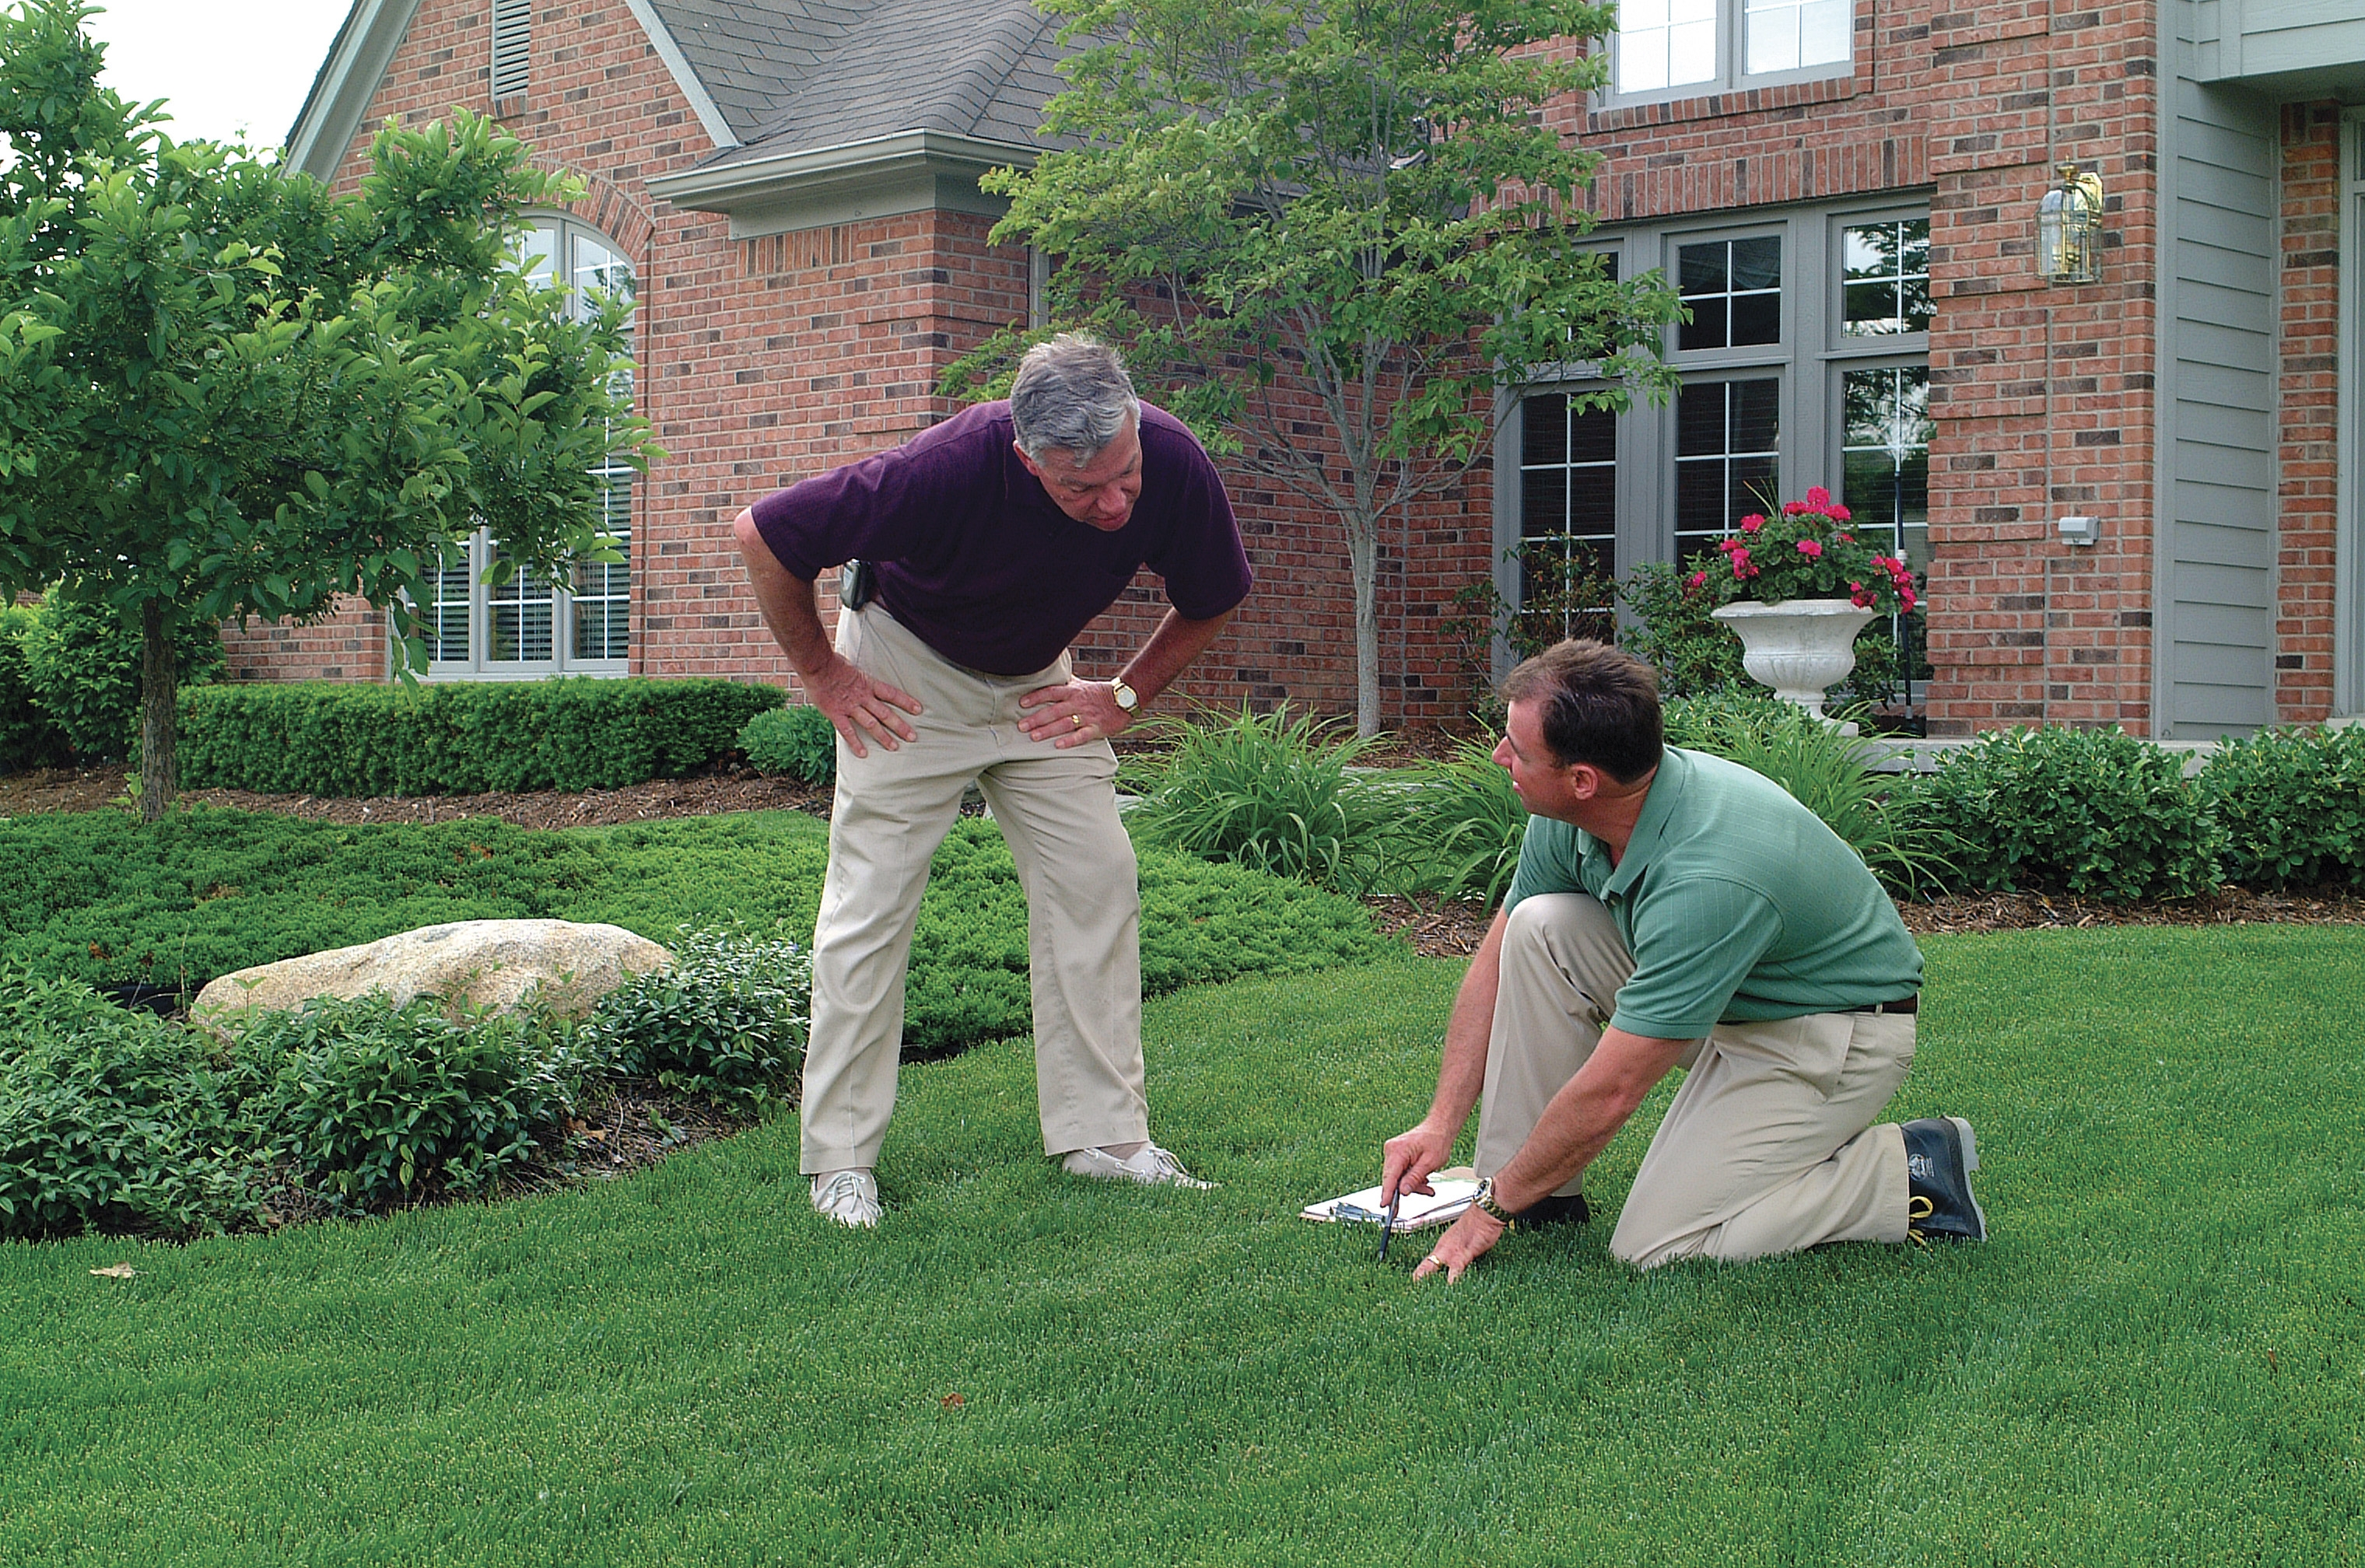 Professional Lawn Care Company in Summit New Jersey | 1.888.Lawntec Services Inc.